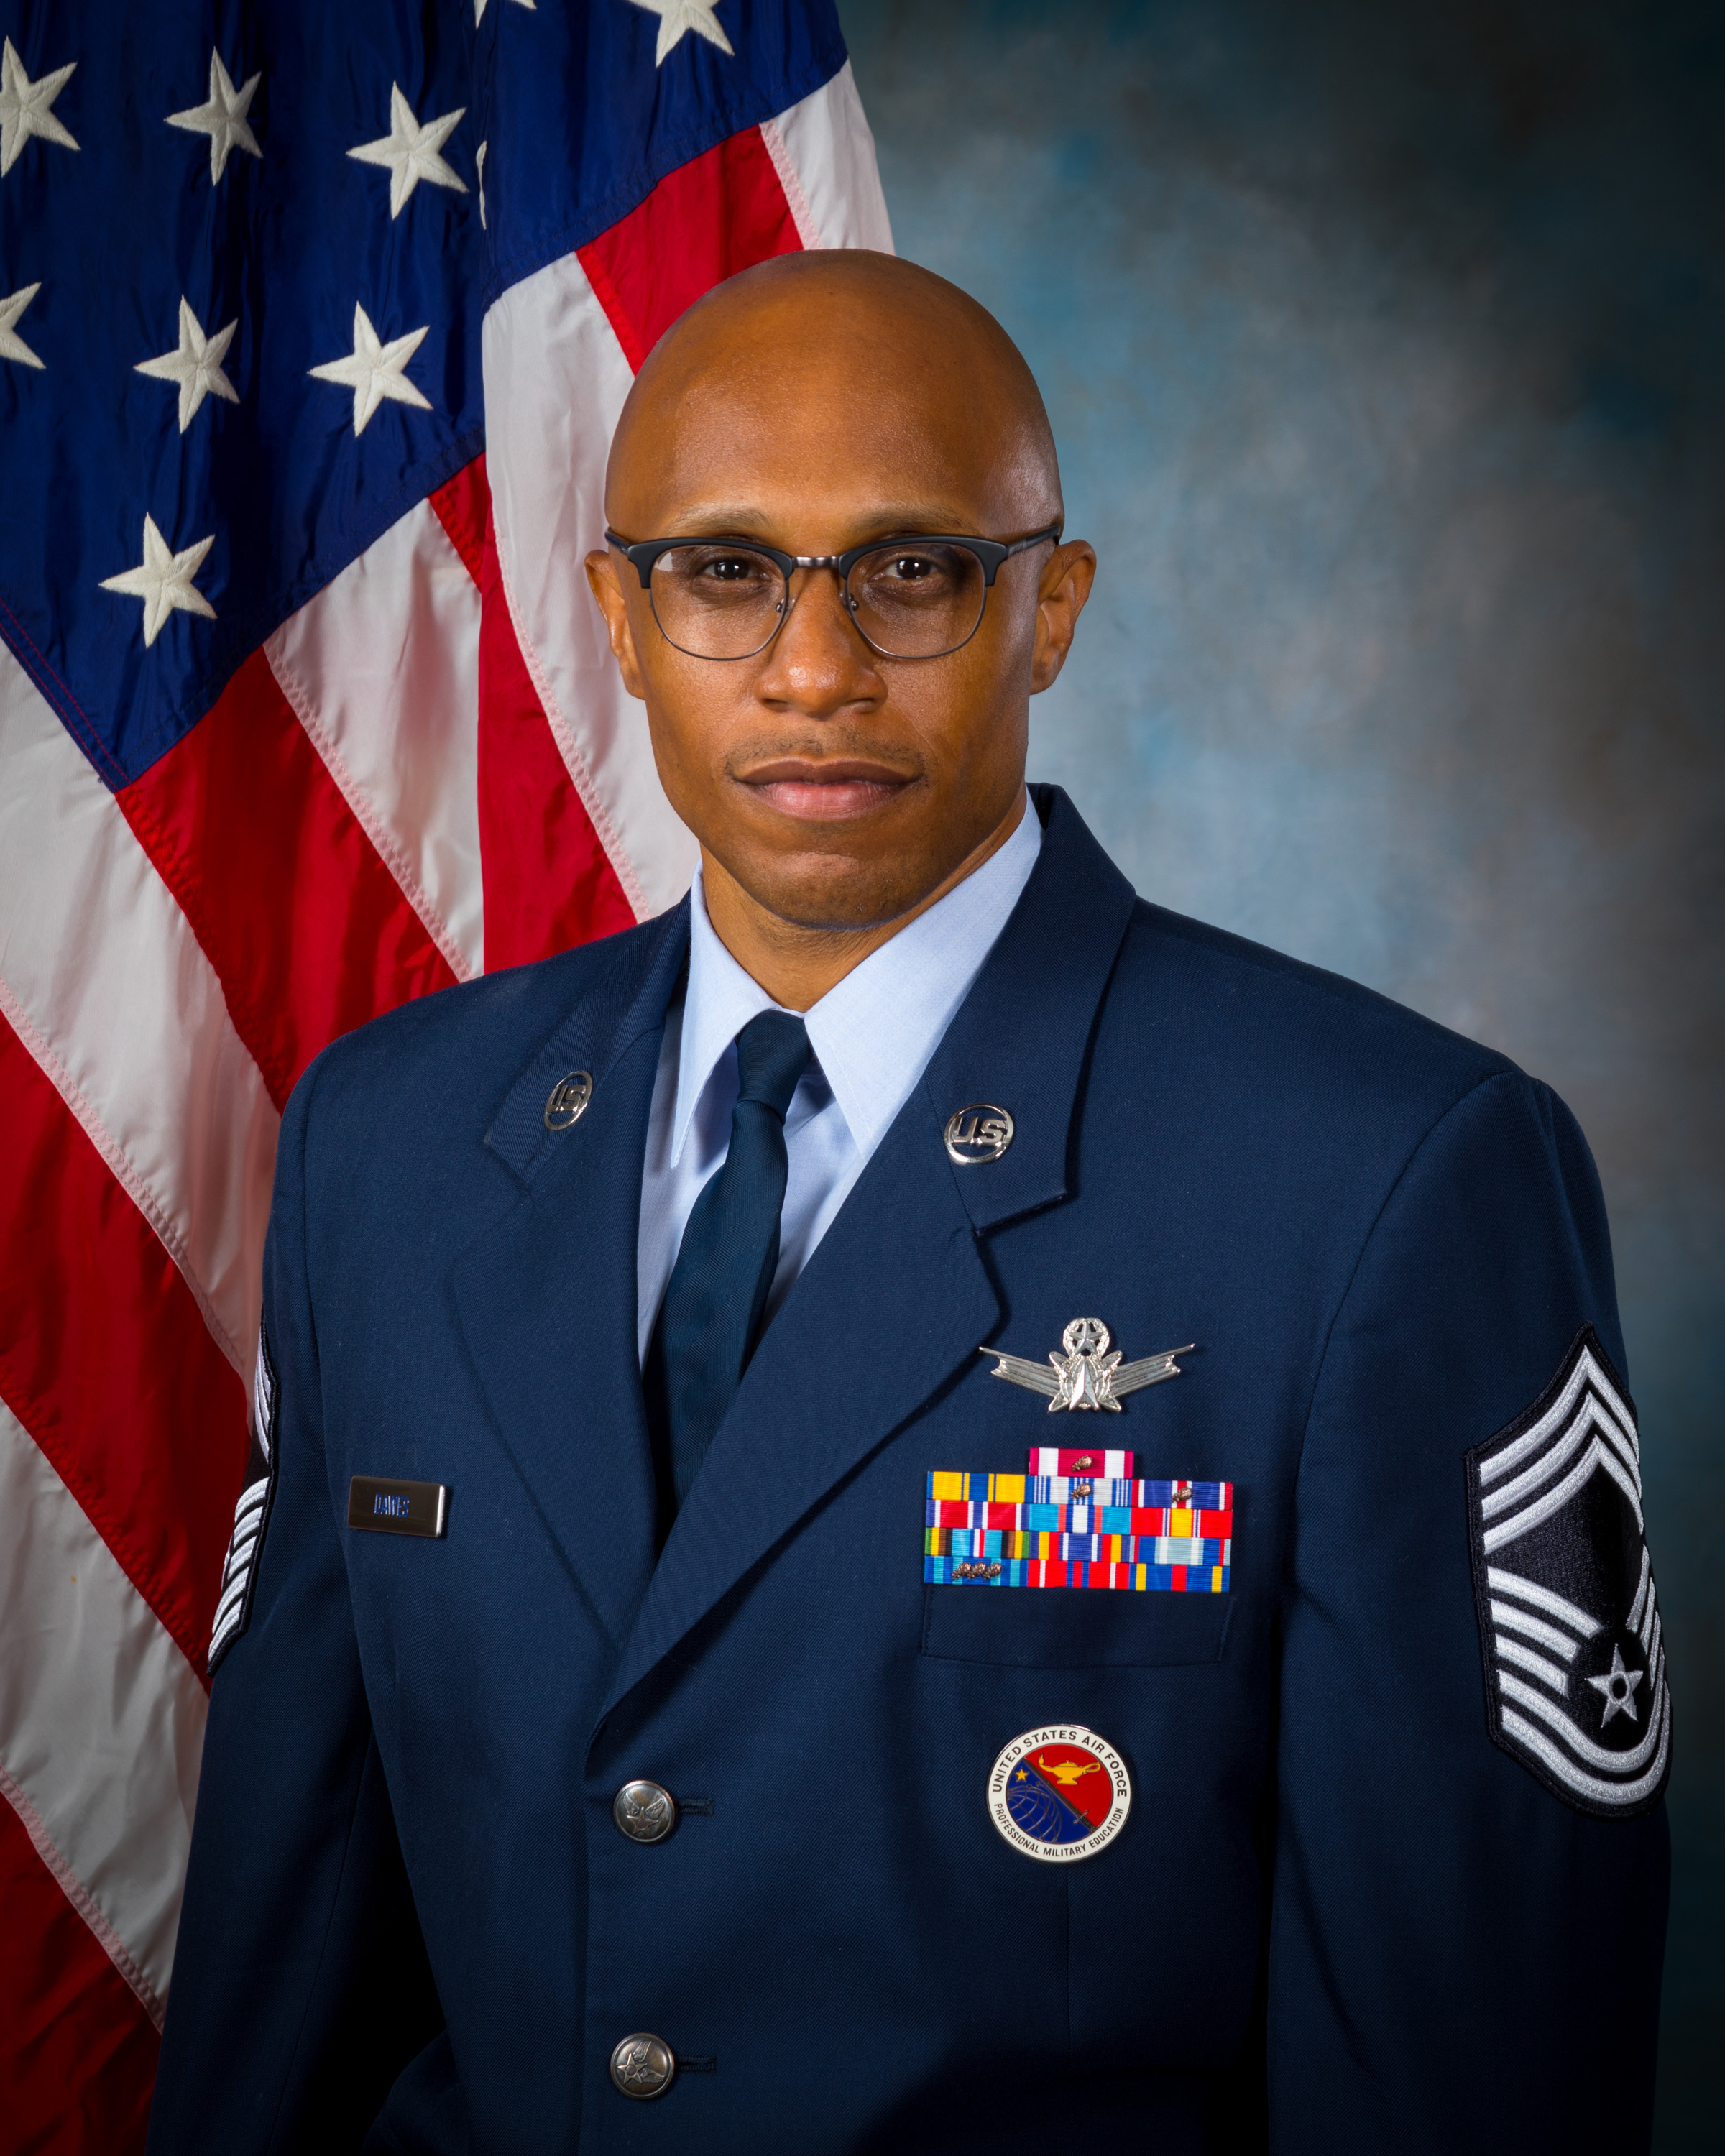 Chief Master Sergeant Conrad Dawes official photo which links to biography